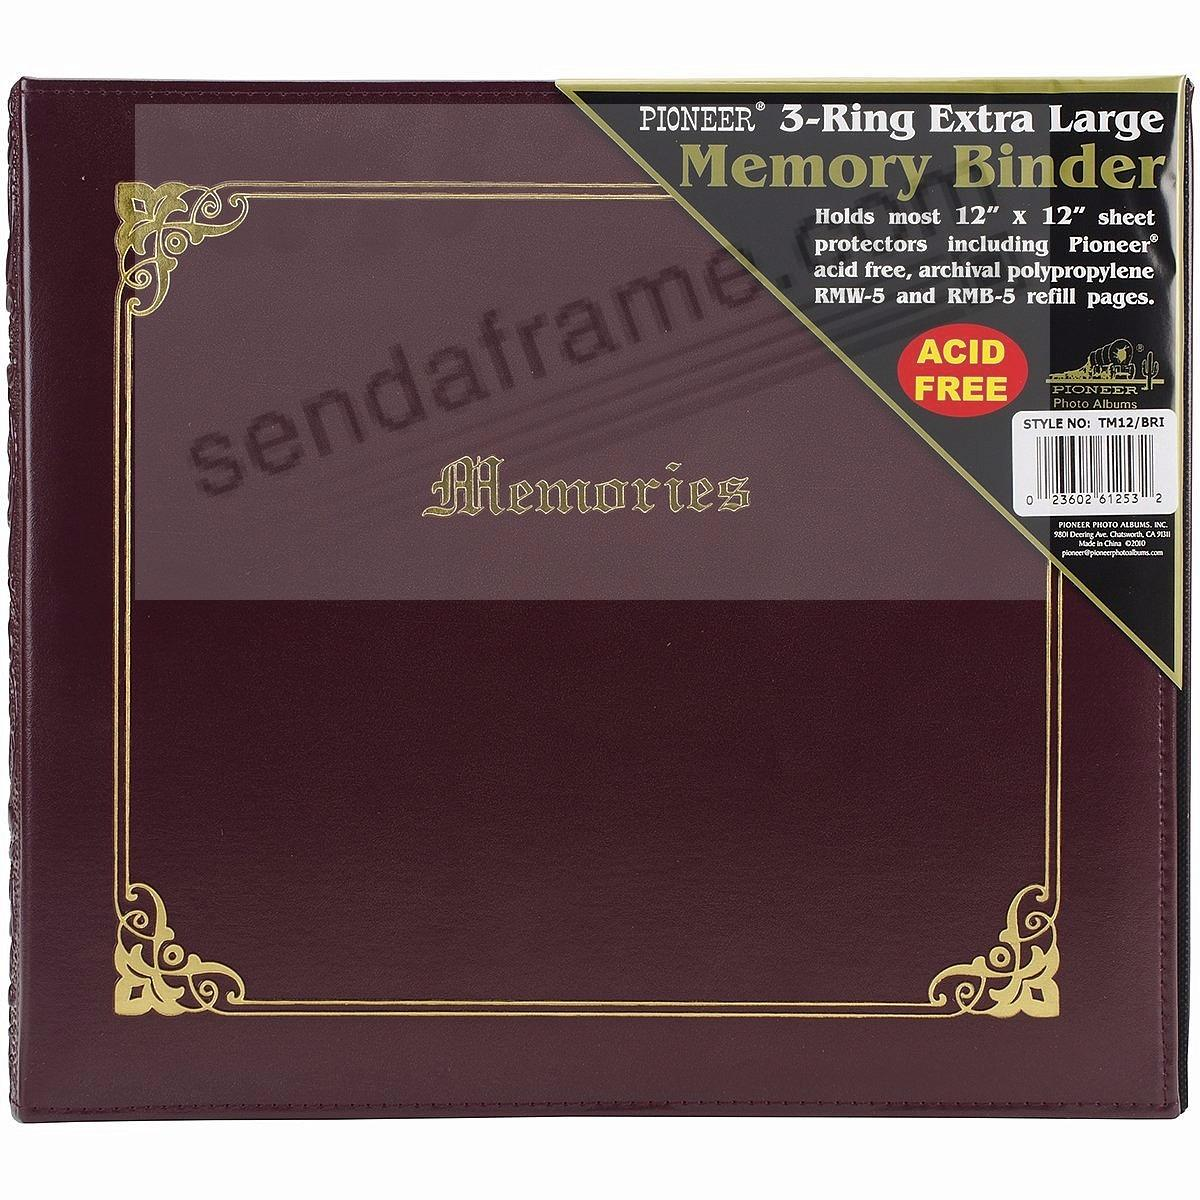 Burgundy wide-size 3-ring binder (unfilled) by Pioneer®